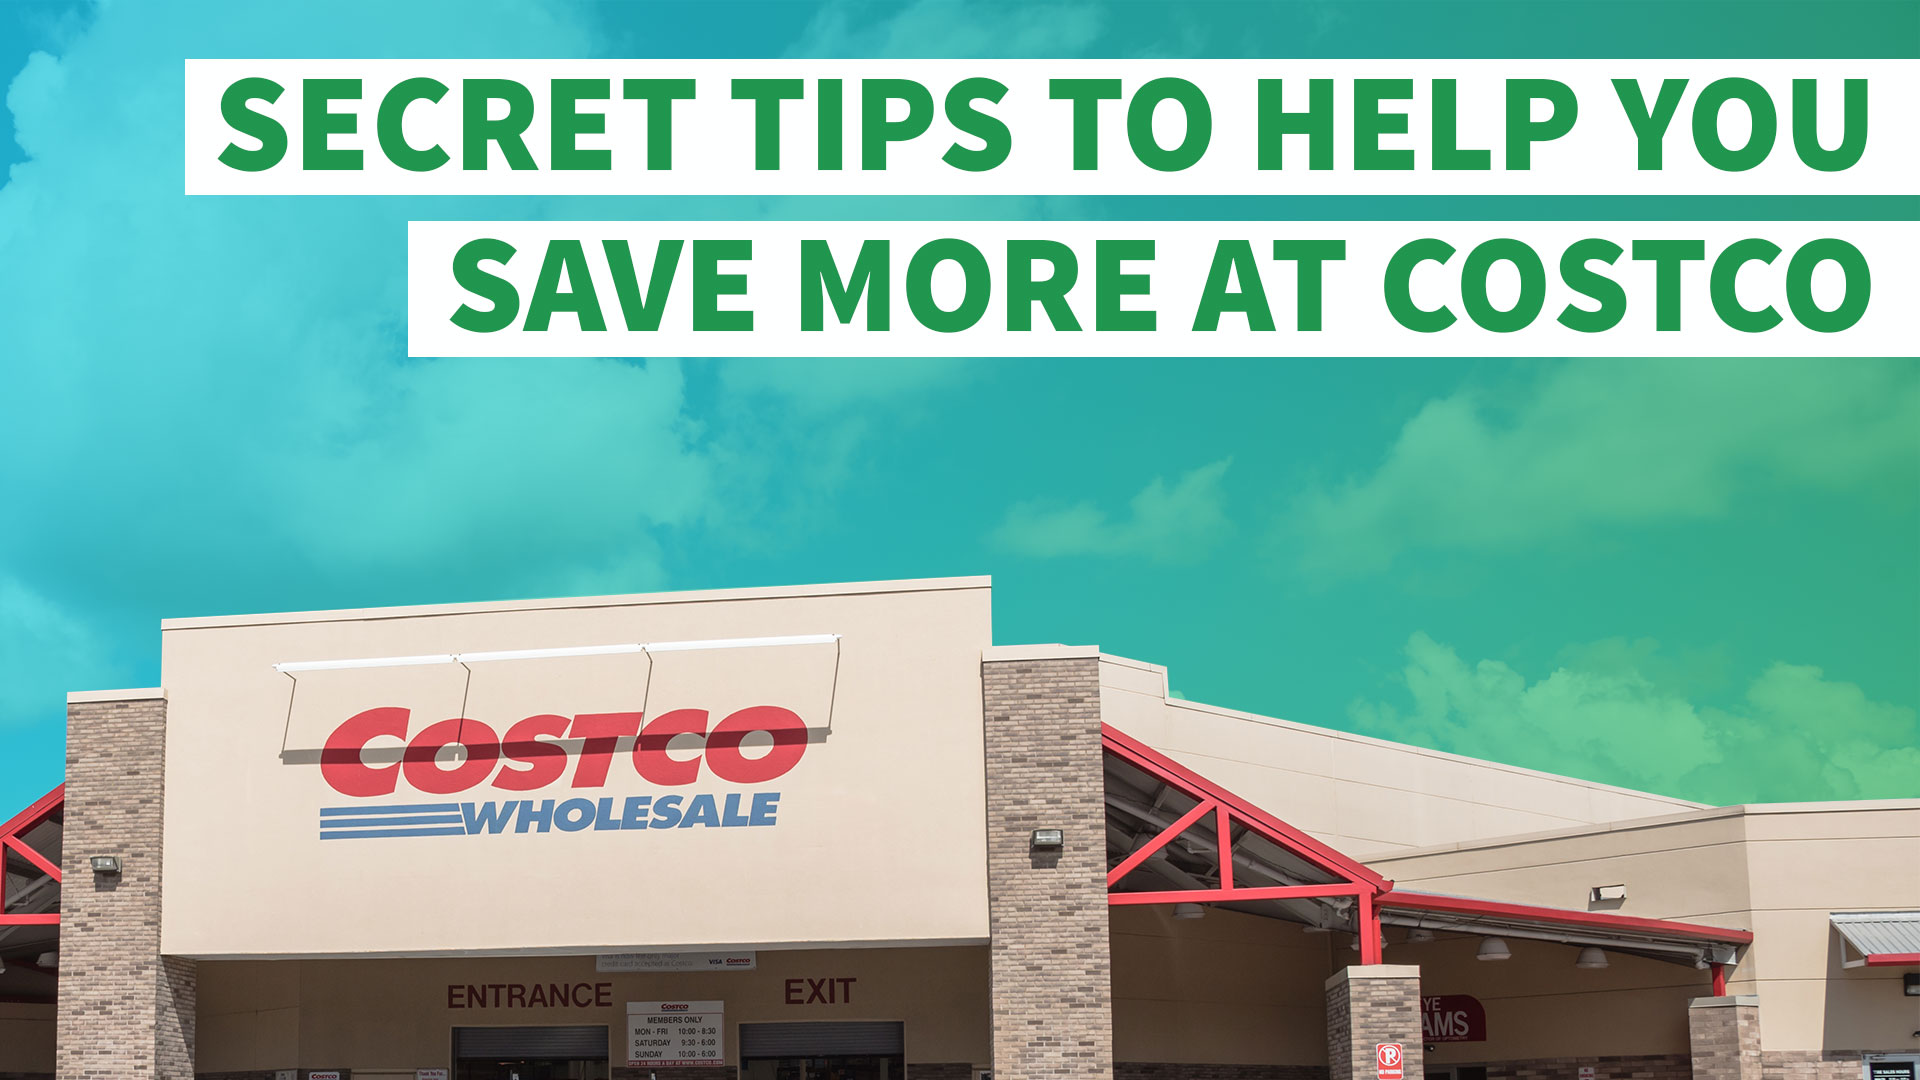 Costco Secrets Revealed: Shop Smarter With These Savings